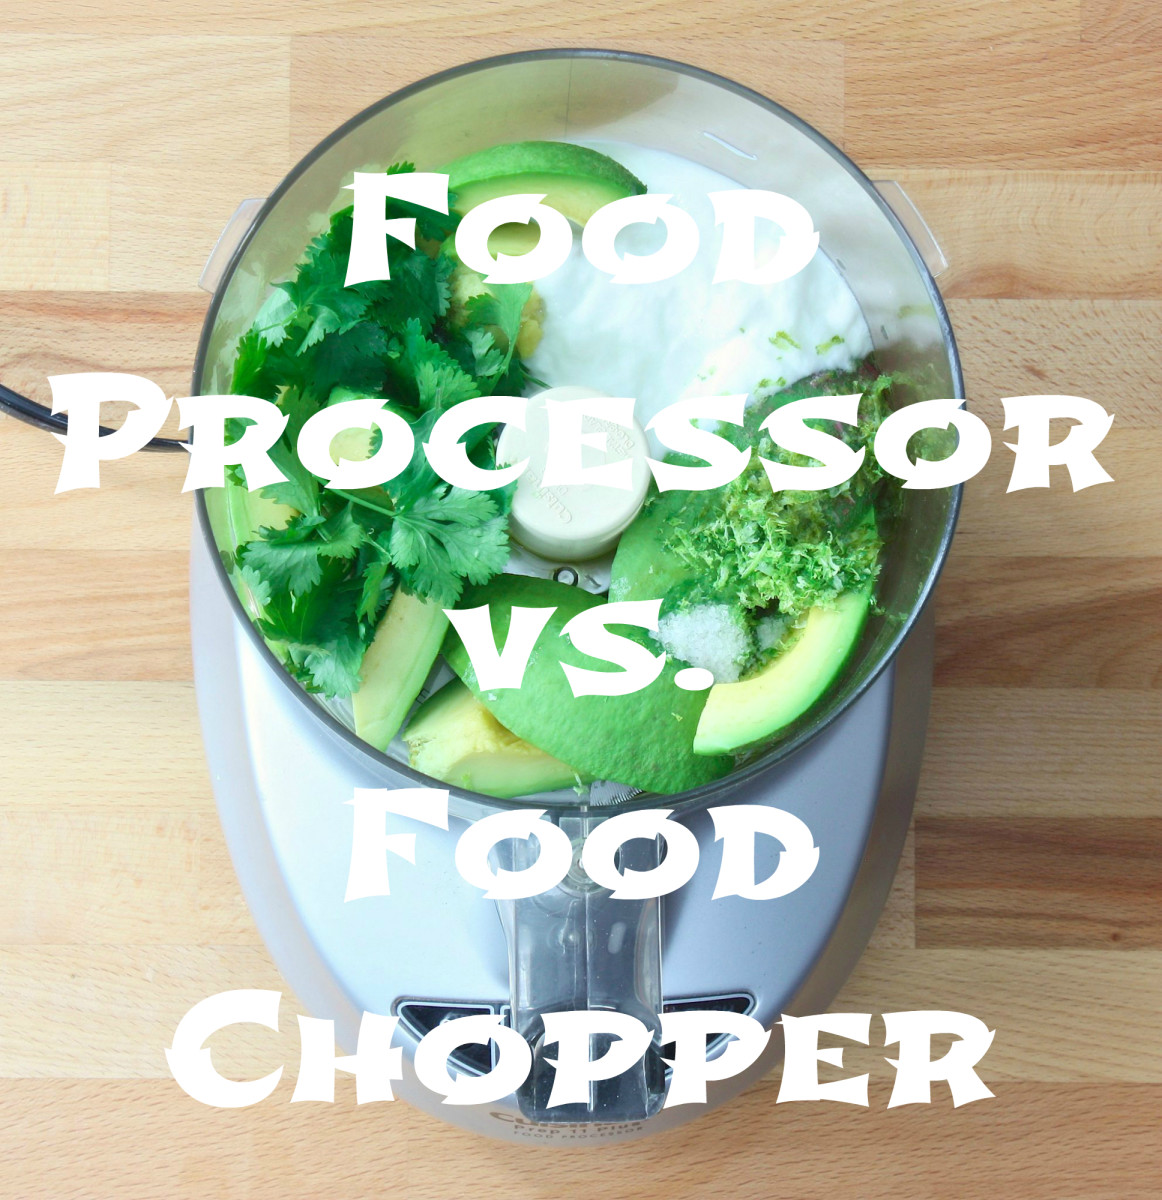 Food Processor vs. Food Chopper